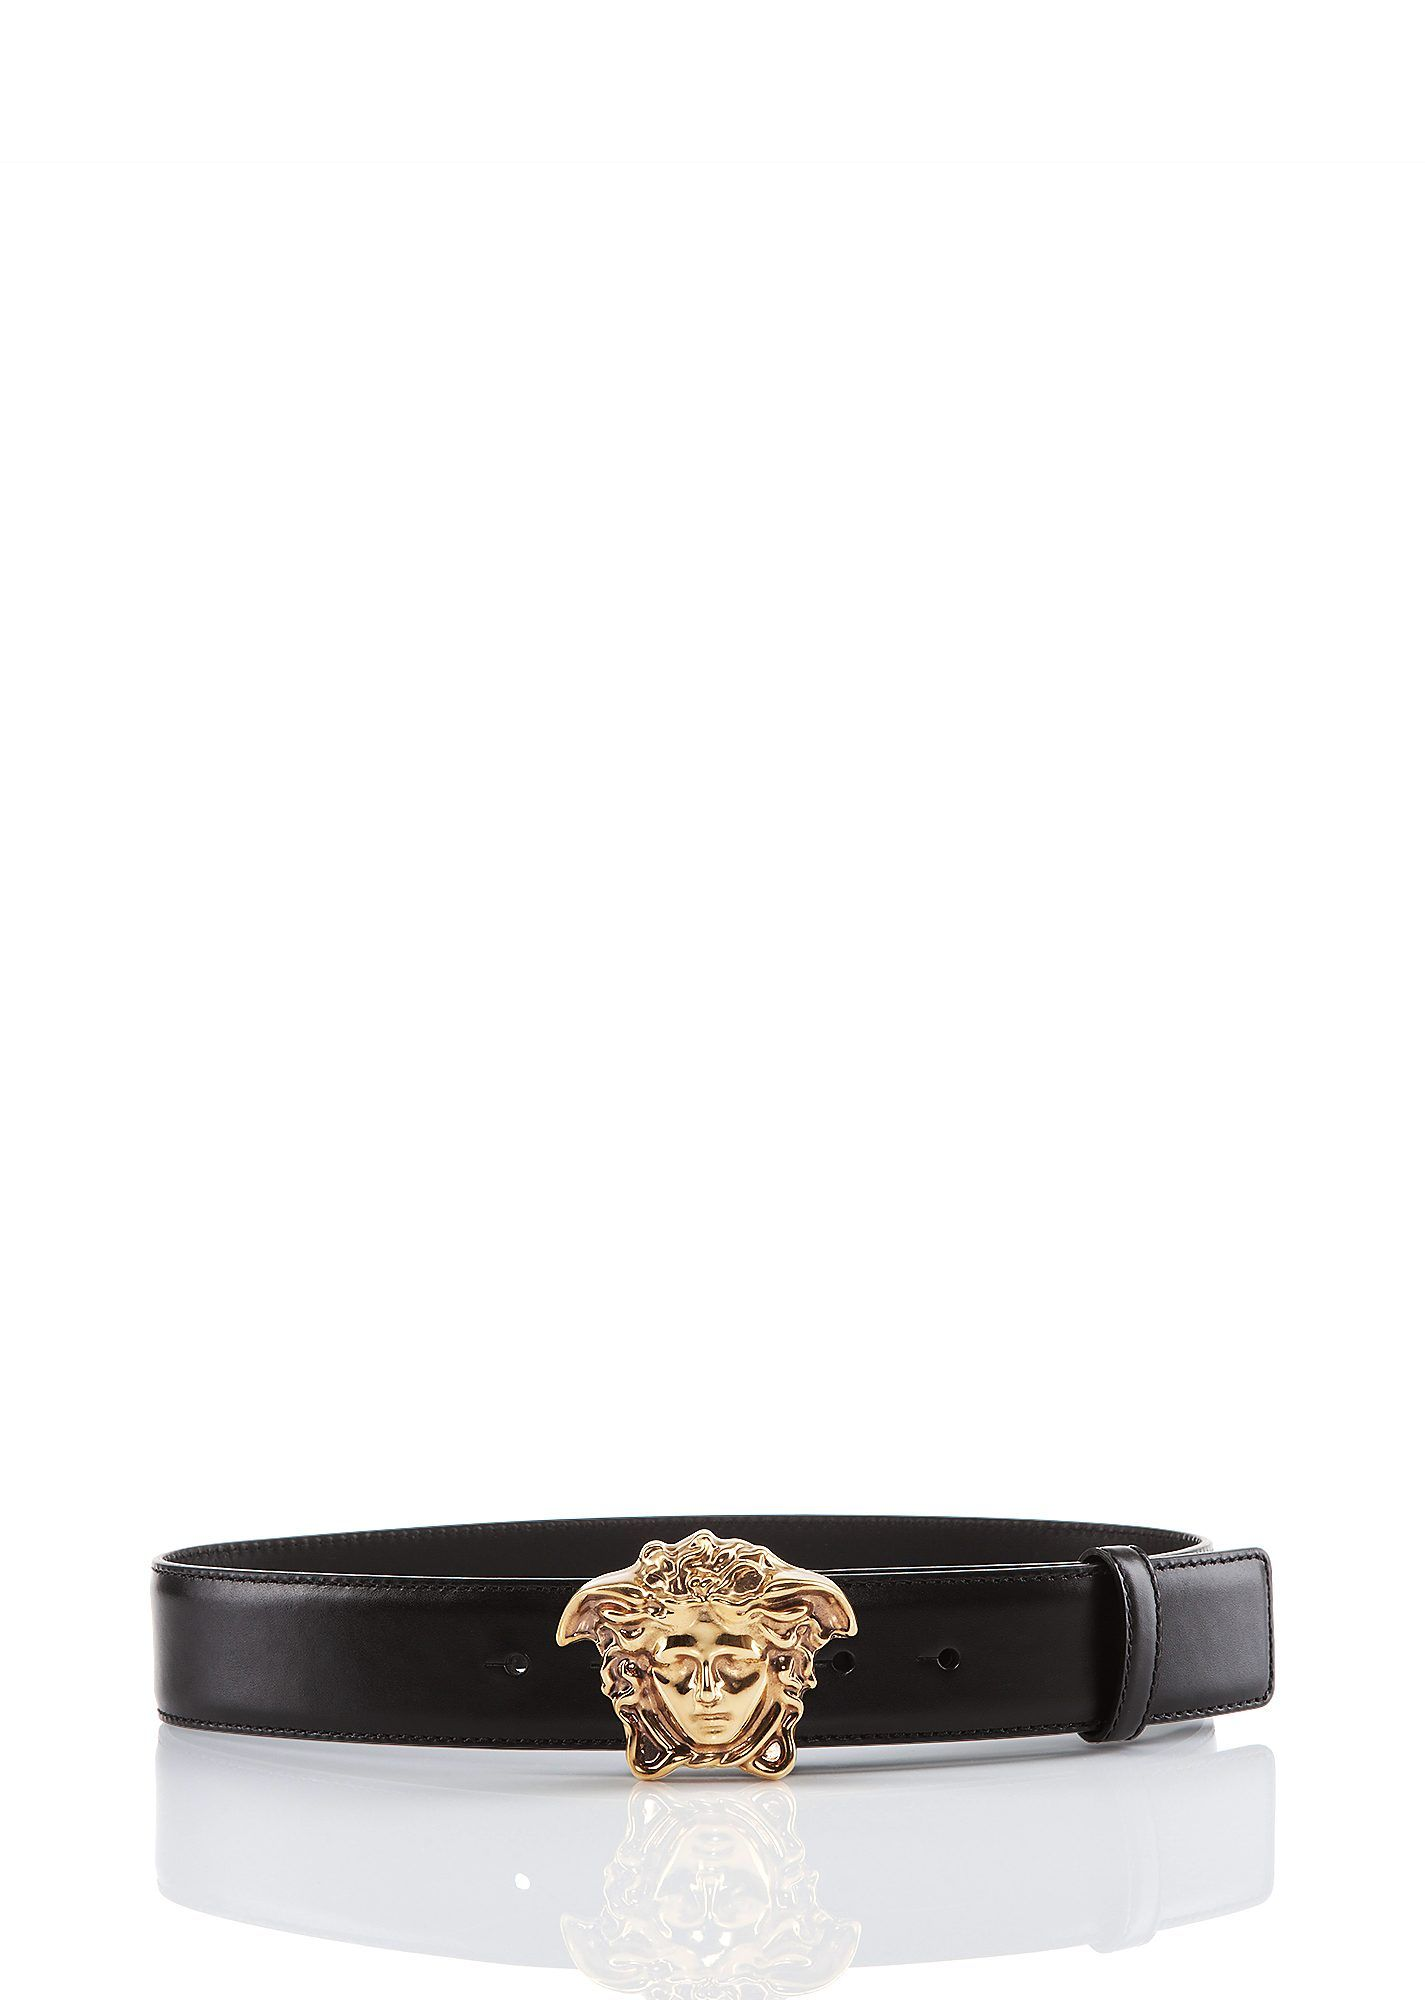 d605b0288b Palazzo Belt with Medusa Buckle for Men | US Online Store in 2019 ...